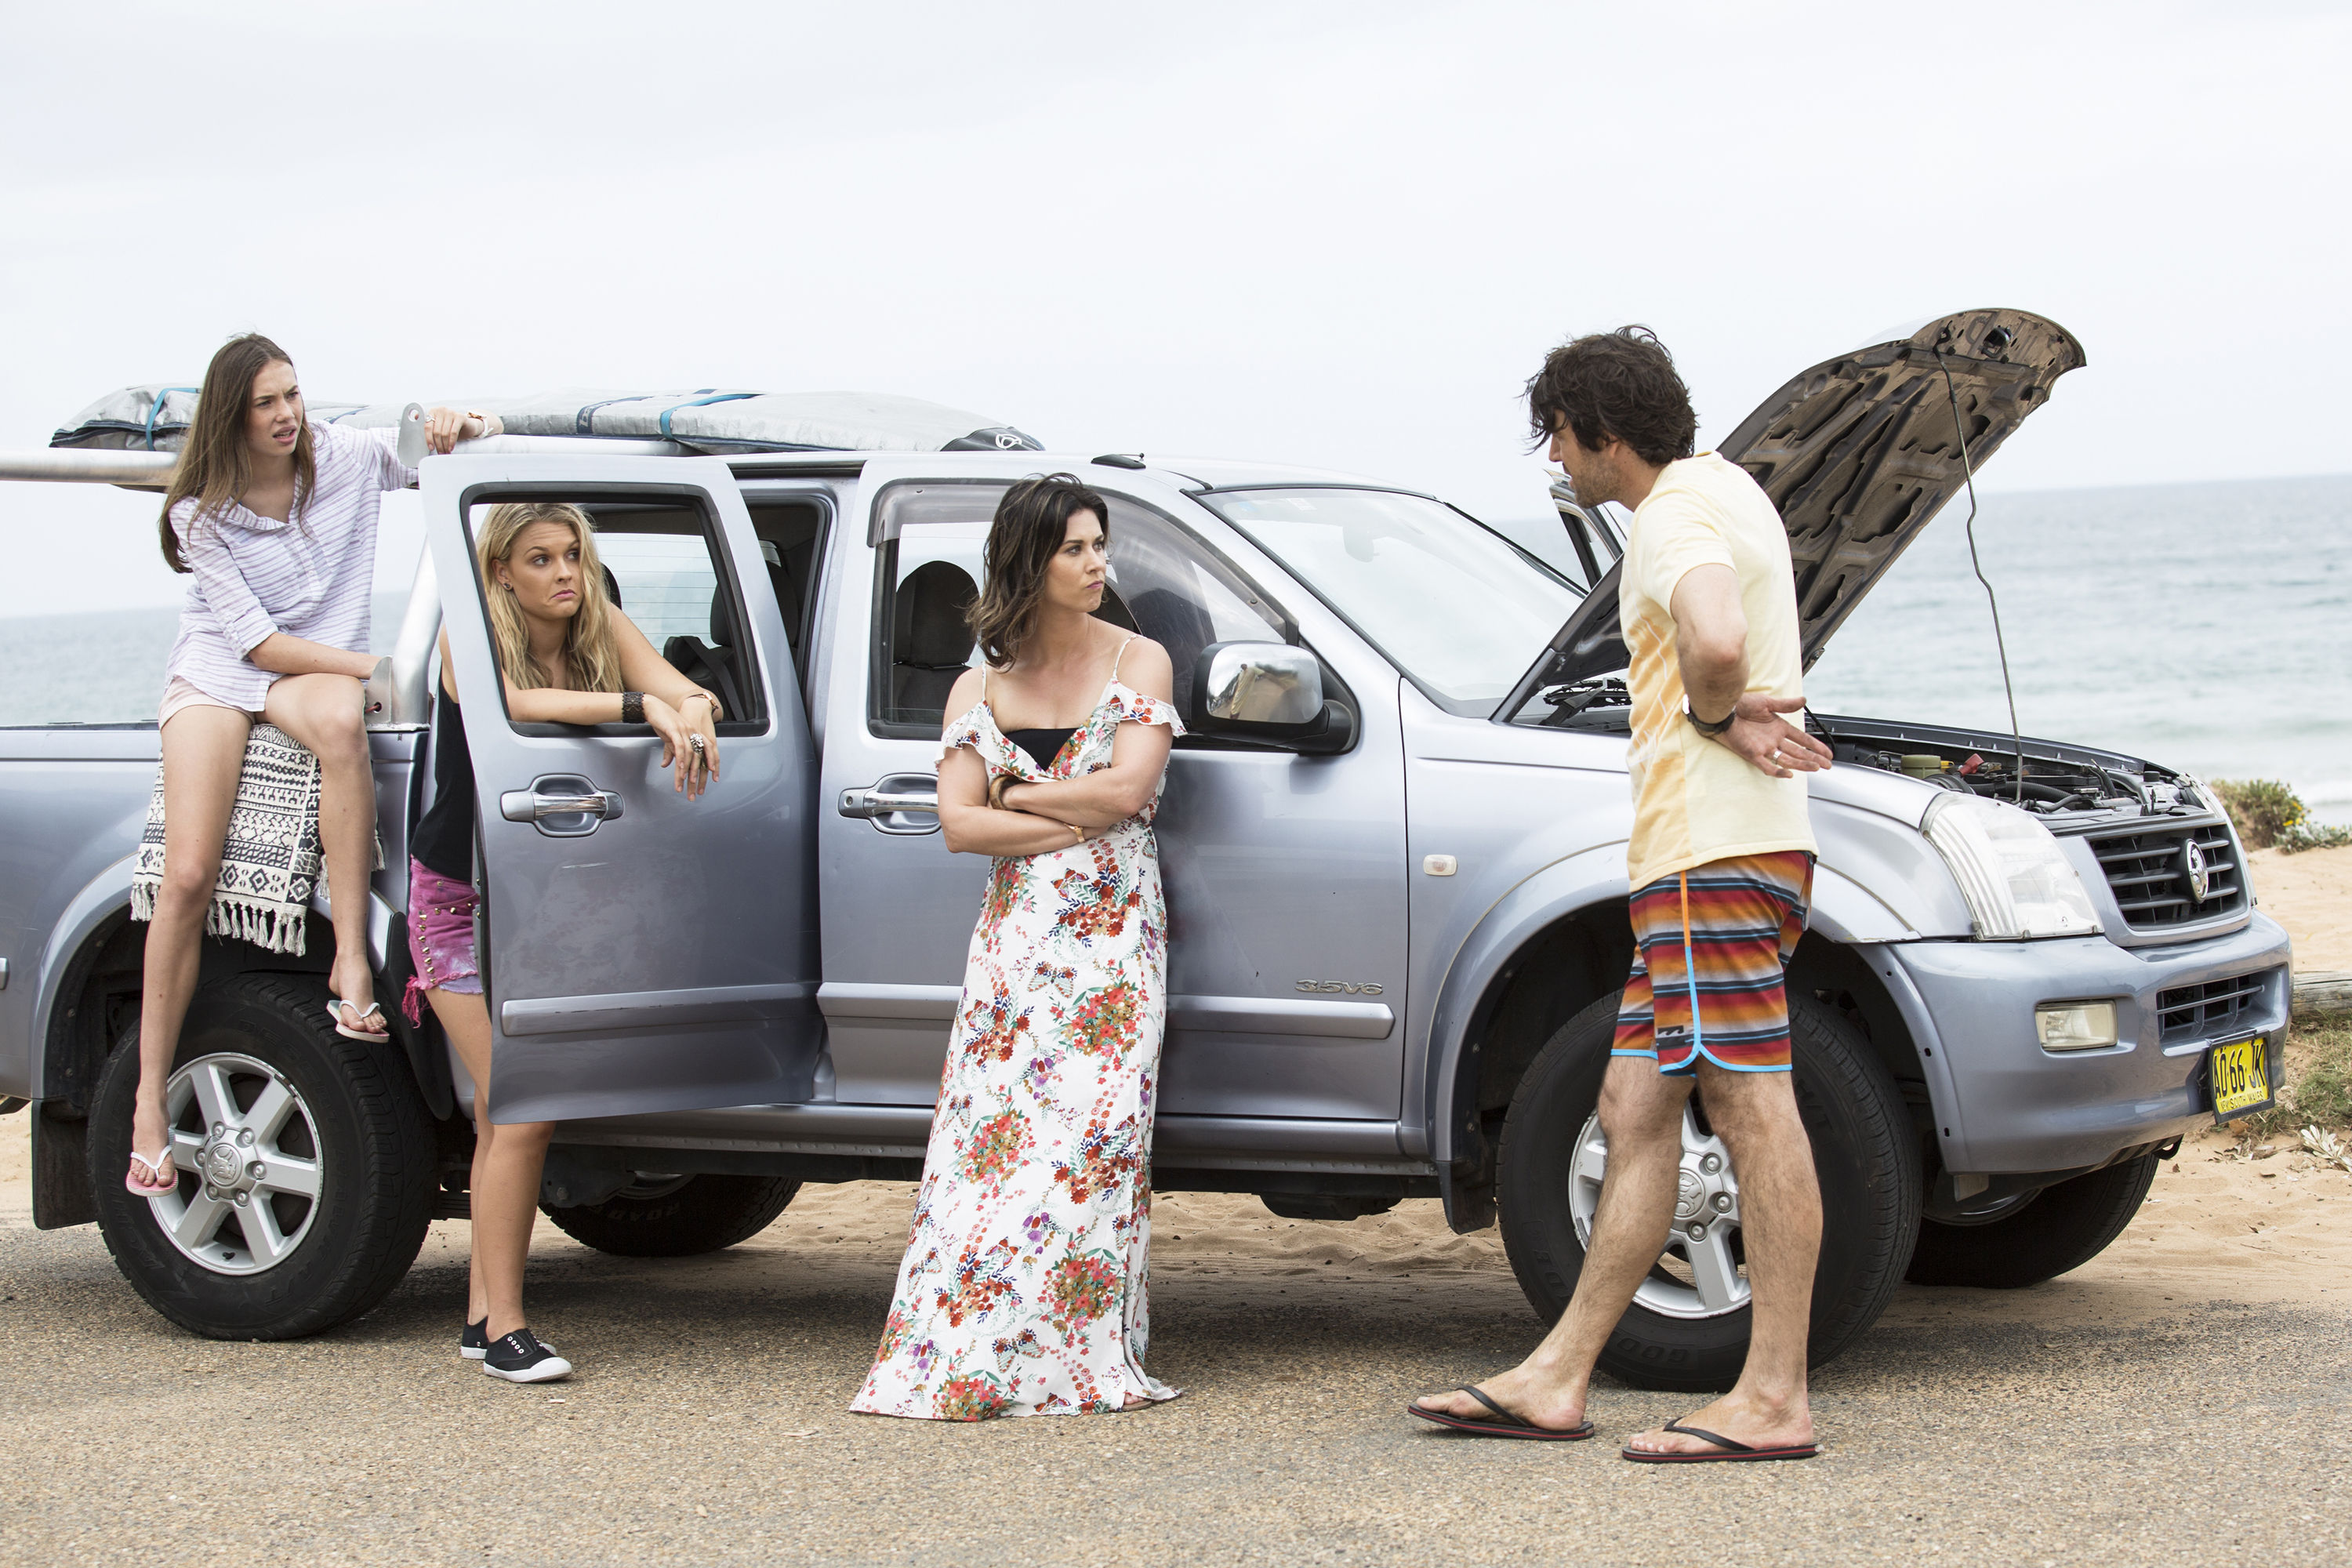 A shocking punch and a new family: 8 big Home and Away spoilers revealed